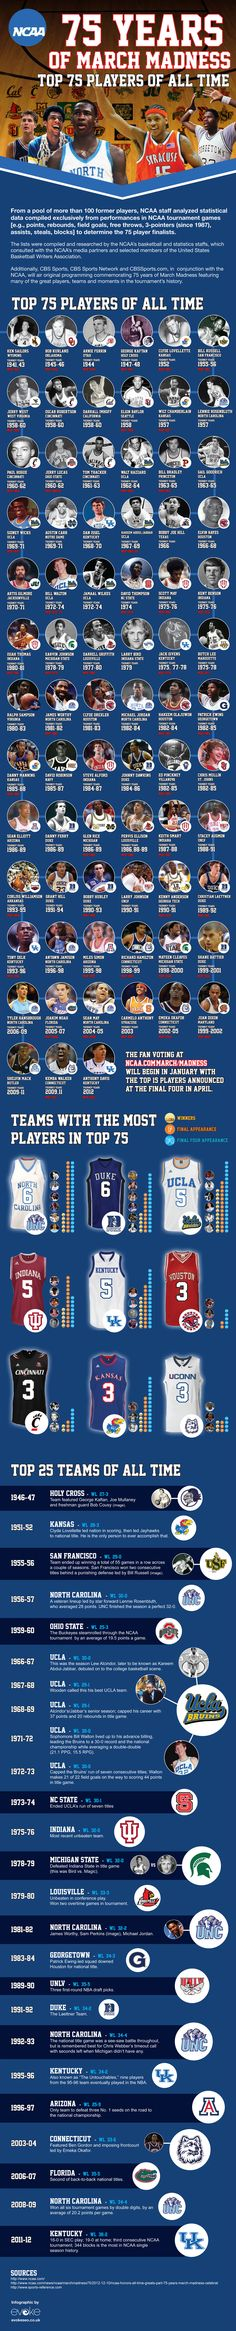 NCAA 75 Years Of March Madness. Find out who are the best 75 players of all time, the top 25 teams of all time and much more!